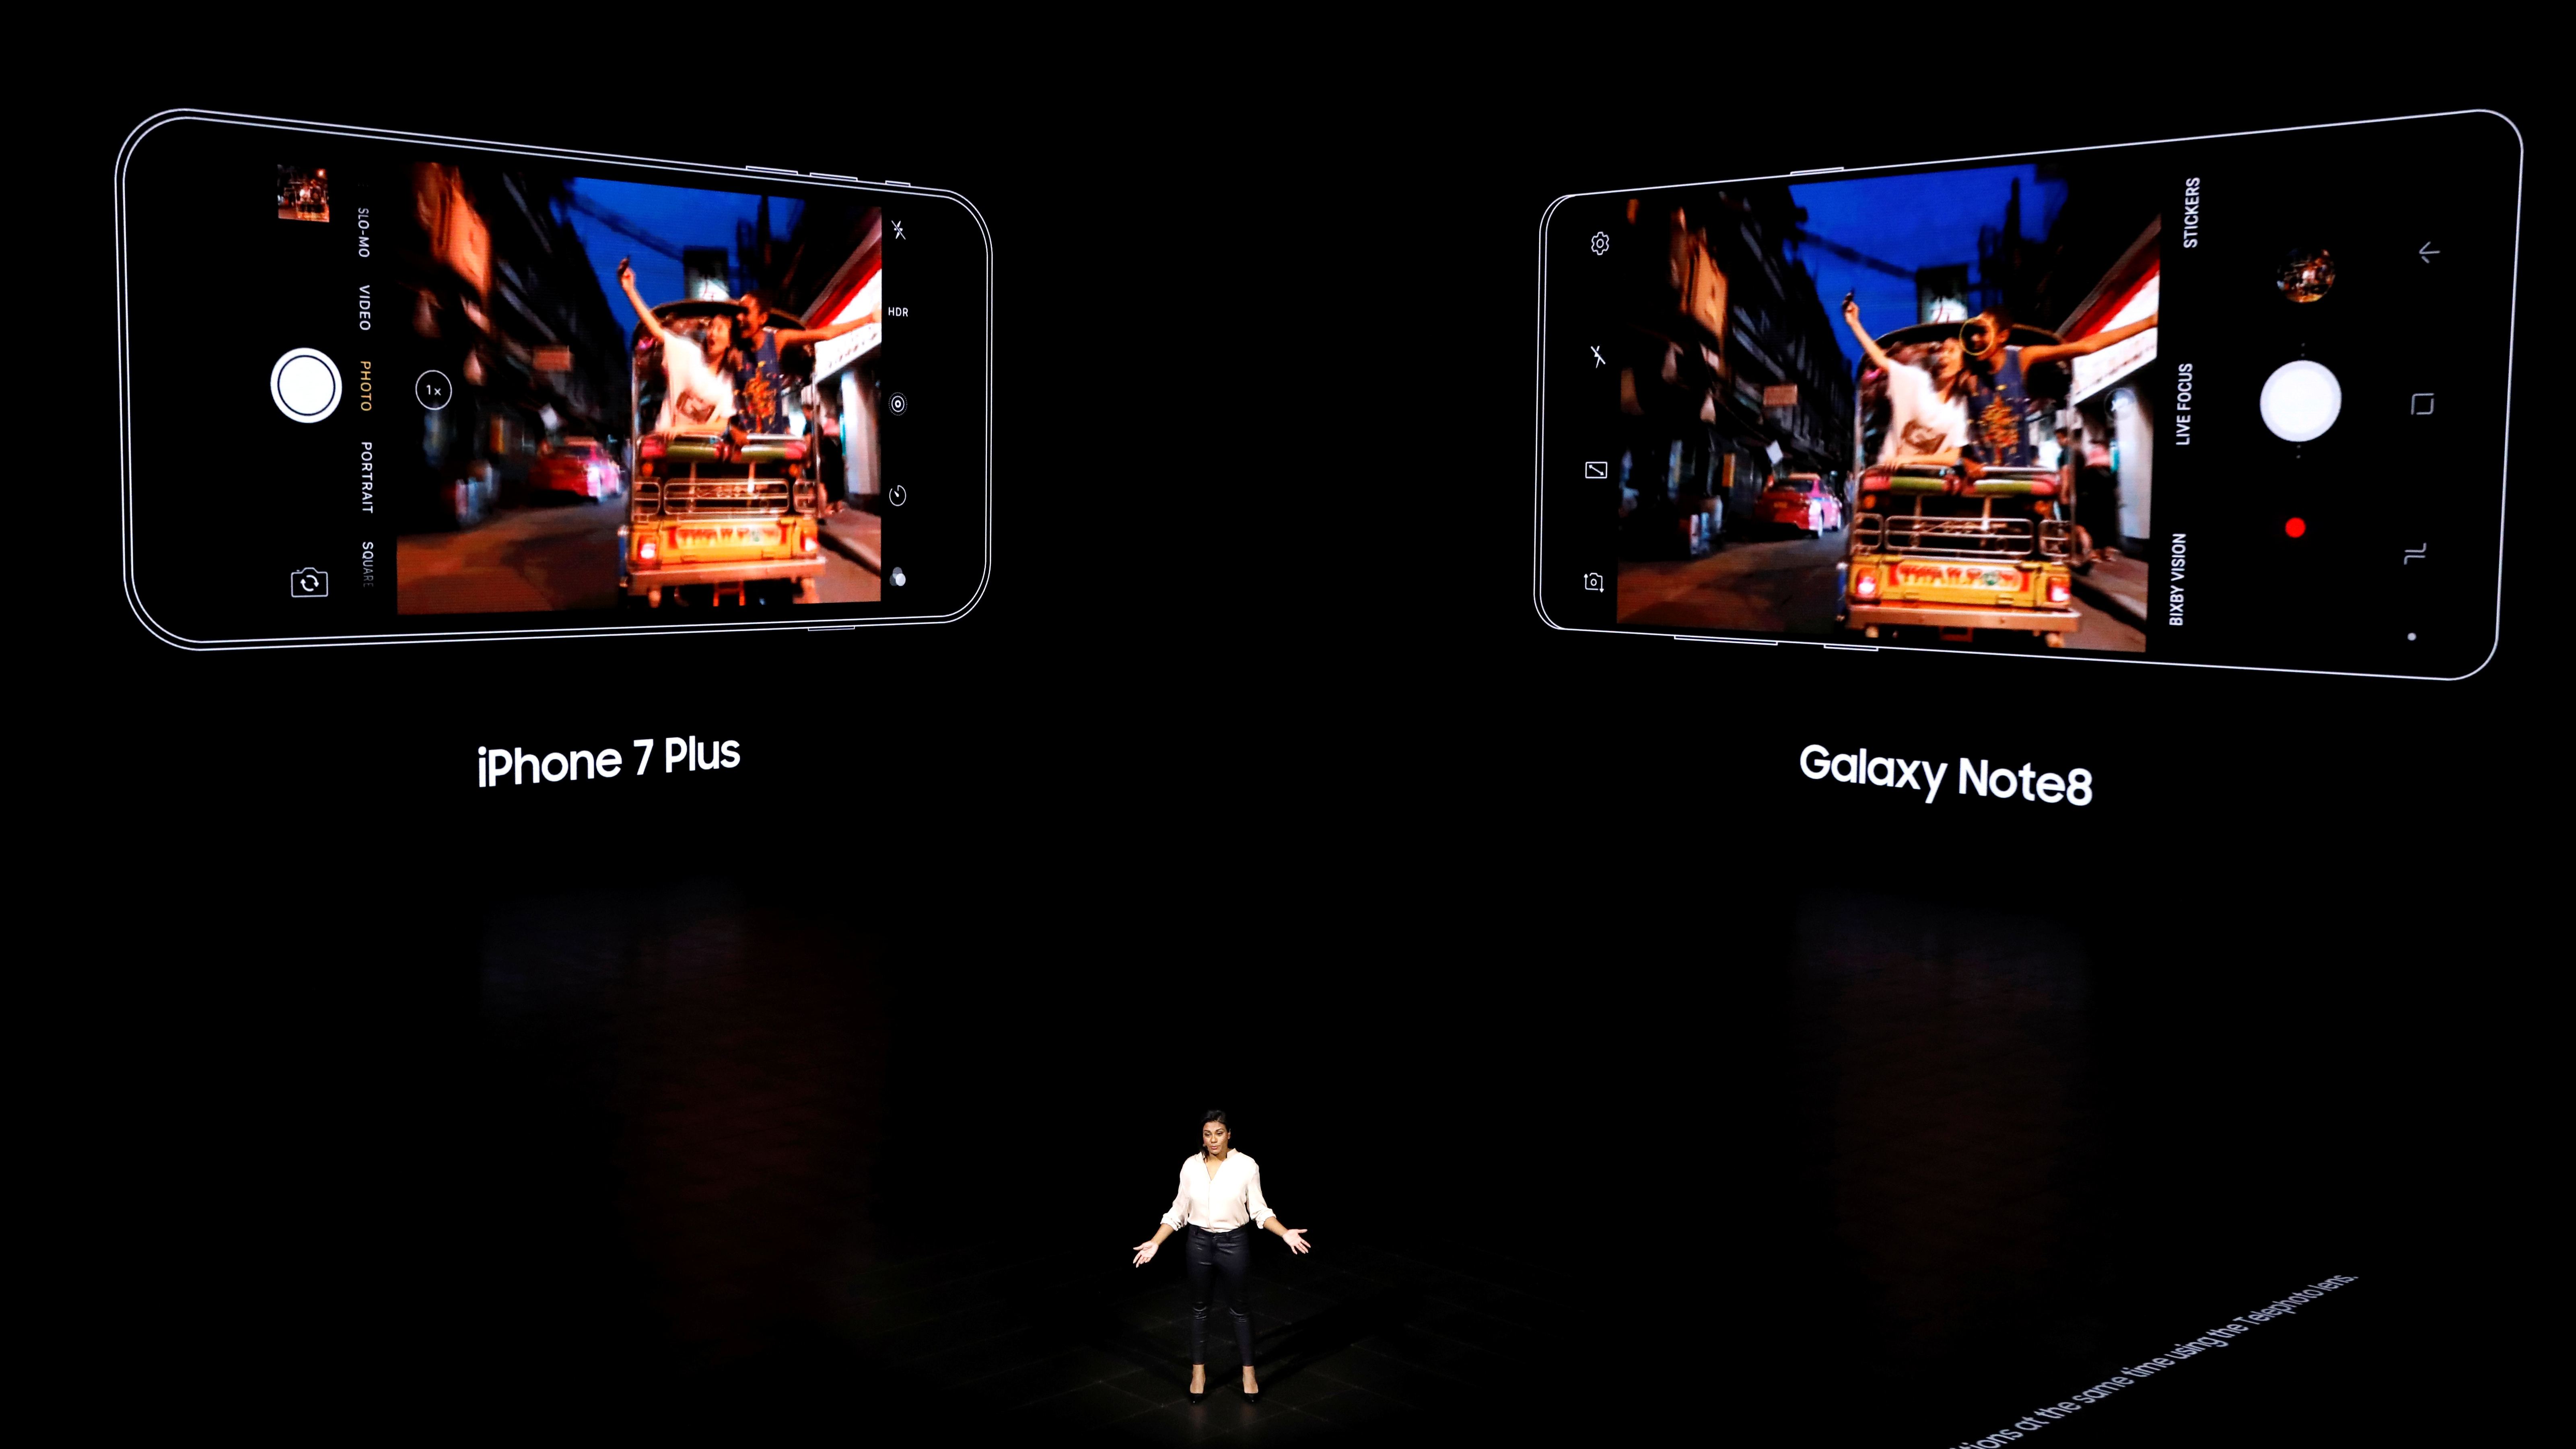 Suzanne De Silva, Samsung Electronics Mobile Communications Director of Product Strategy introduces the Galaxy Note 8 smartphone during a launch event in New York City, U.S., August 23, 2017. REUTERS/Brendan McDermid - RTS1D063